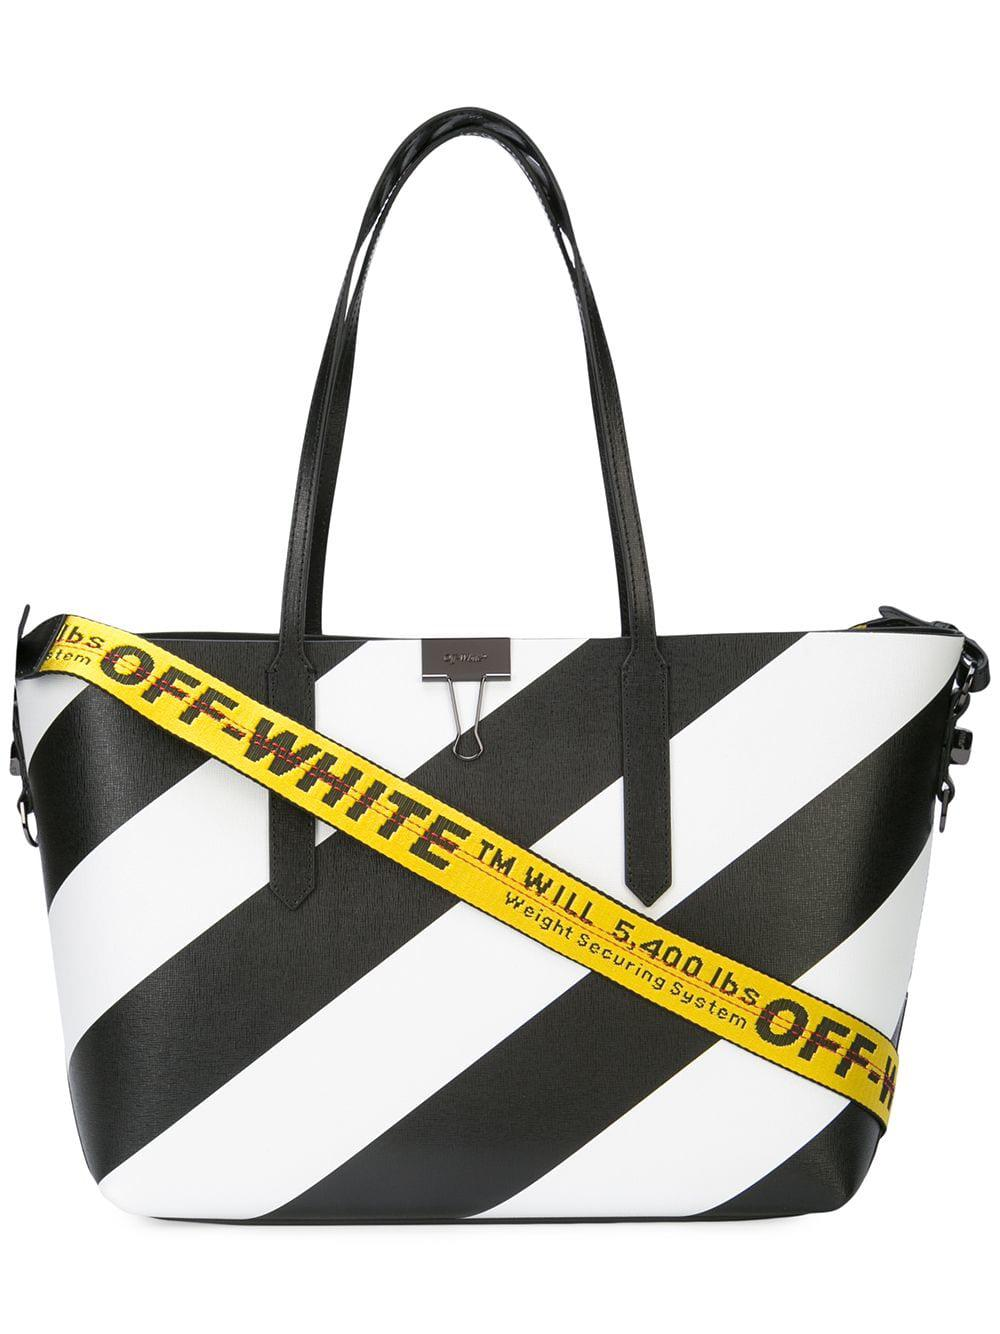 ea7b450813c0 Lyst - Off-White c o Virgil Abloh Black And White Tote Bag in Black